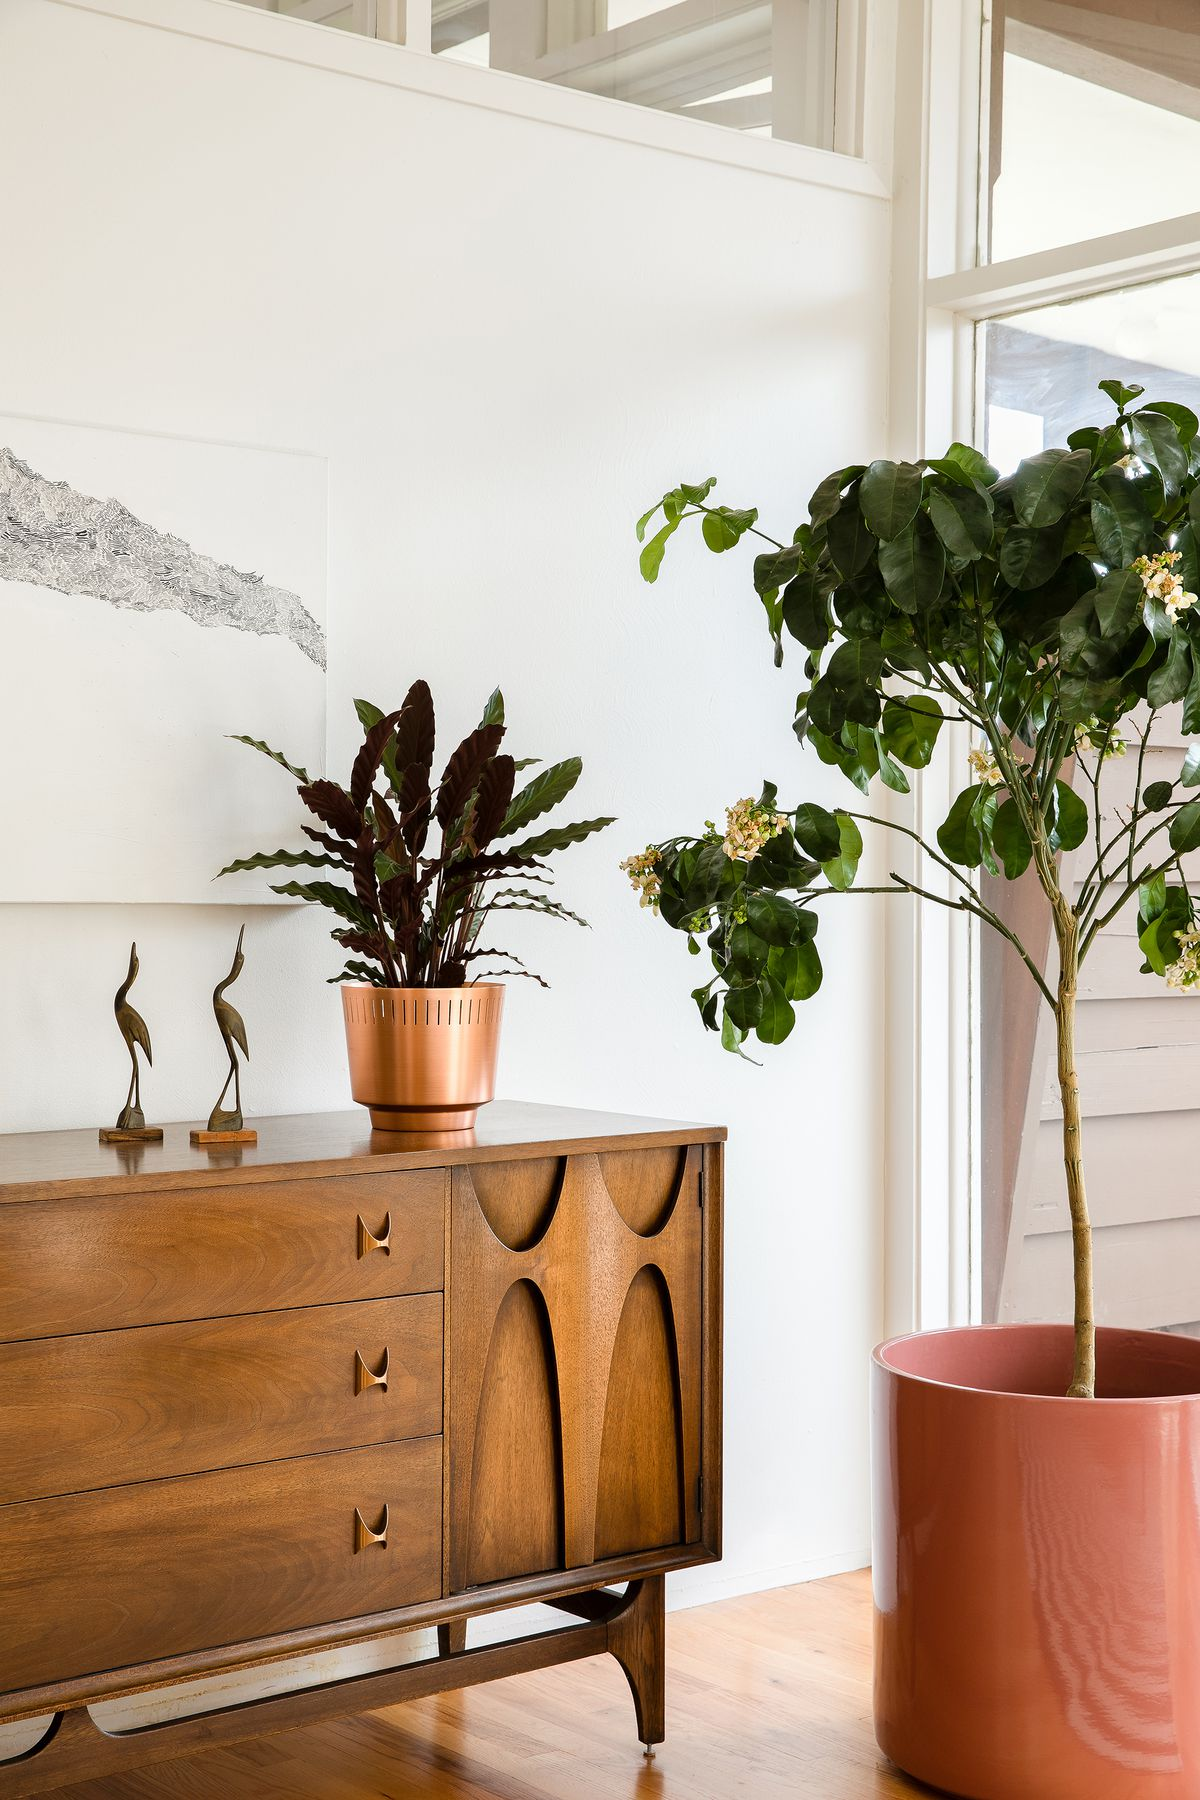 A wooden dresser sits against a white wall. There is a large houseplant on the floor next to the dresser in a pink colored planter. On the dresser is another houseplant in a copper planter.